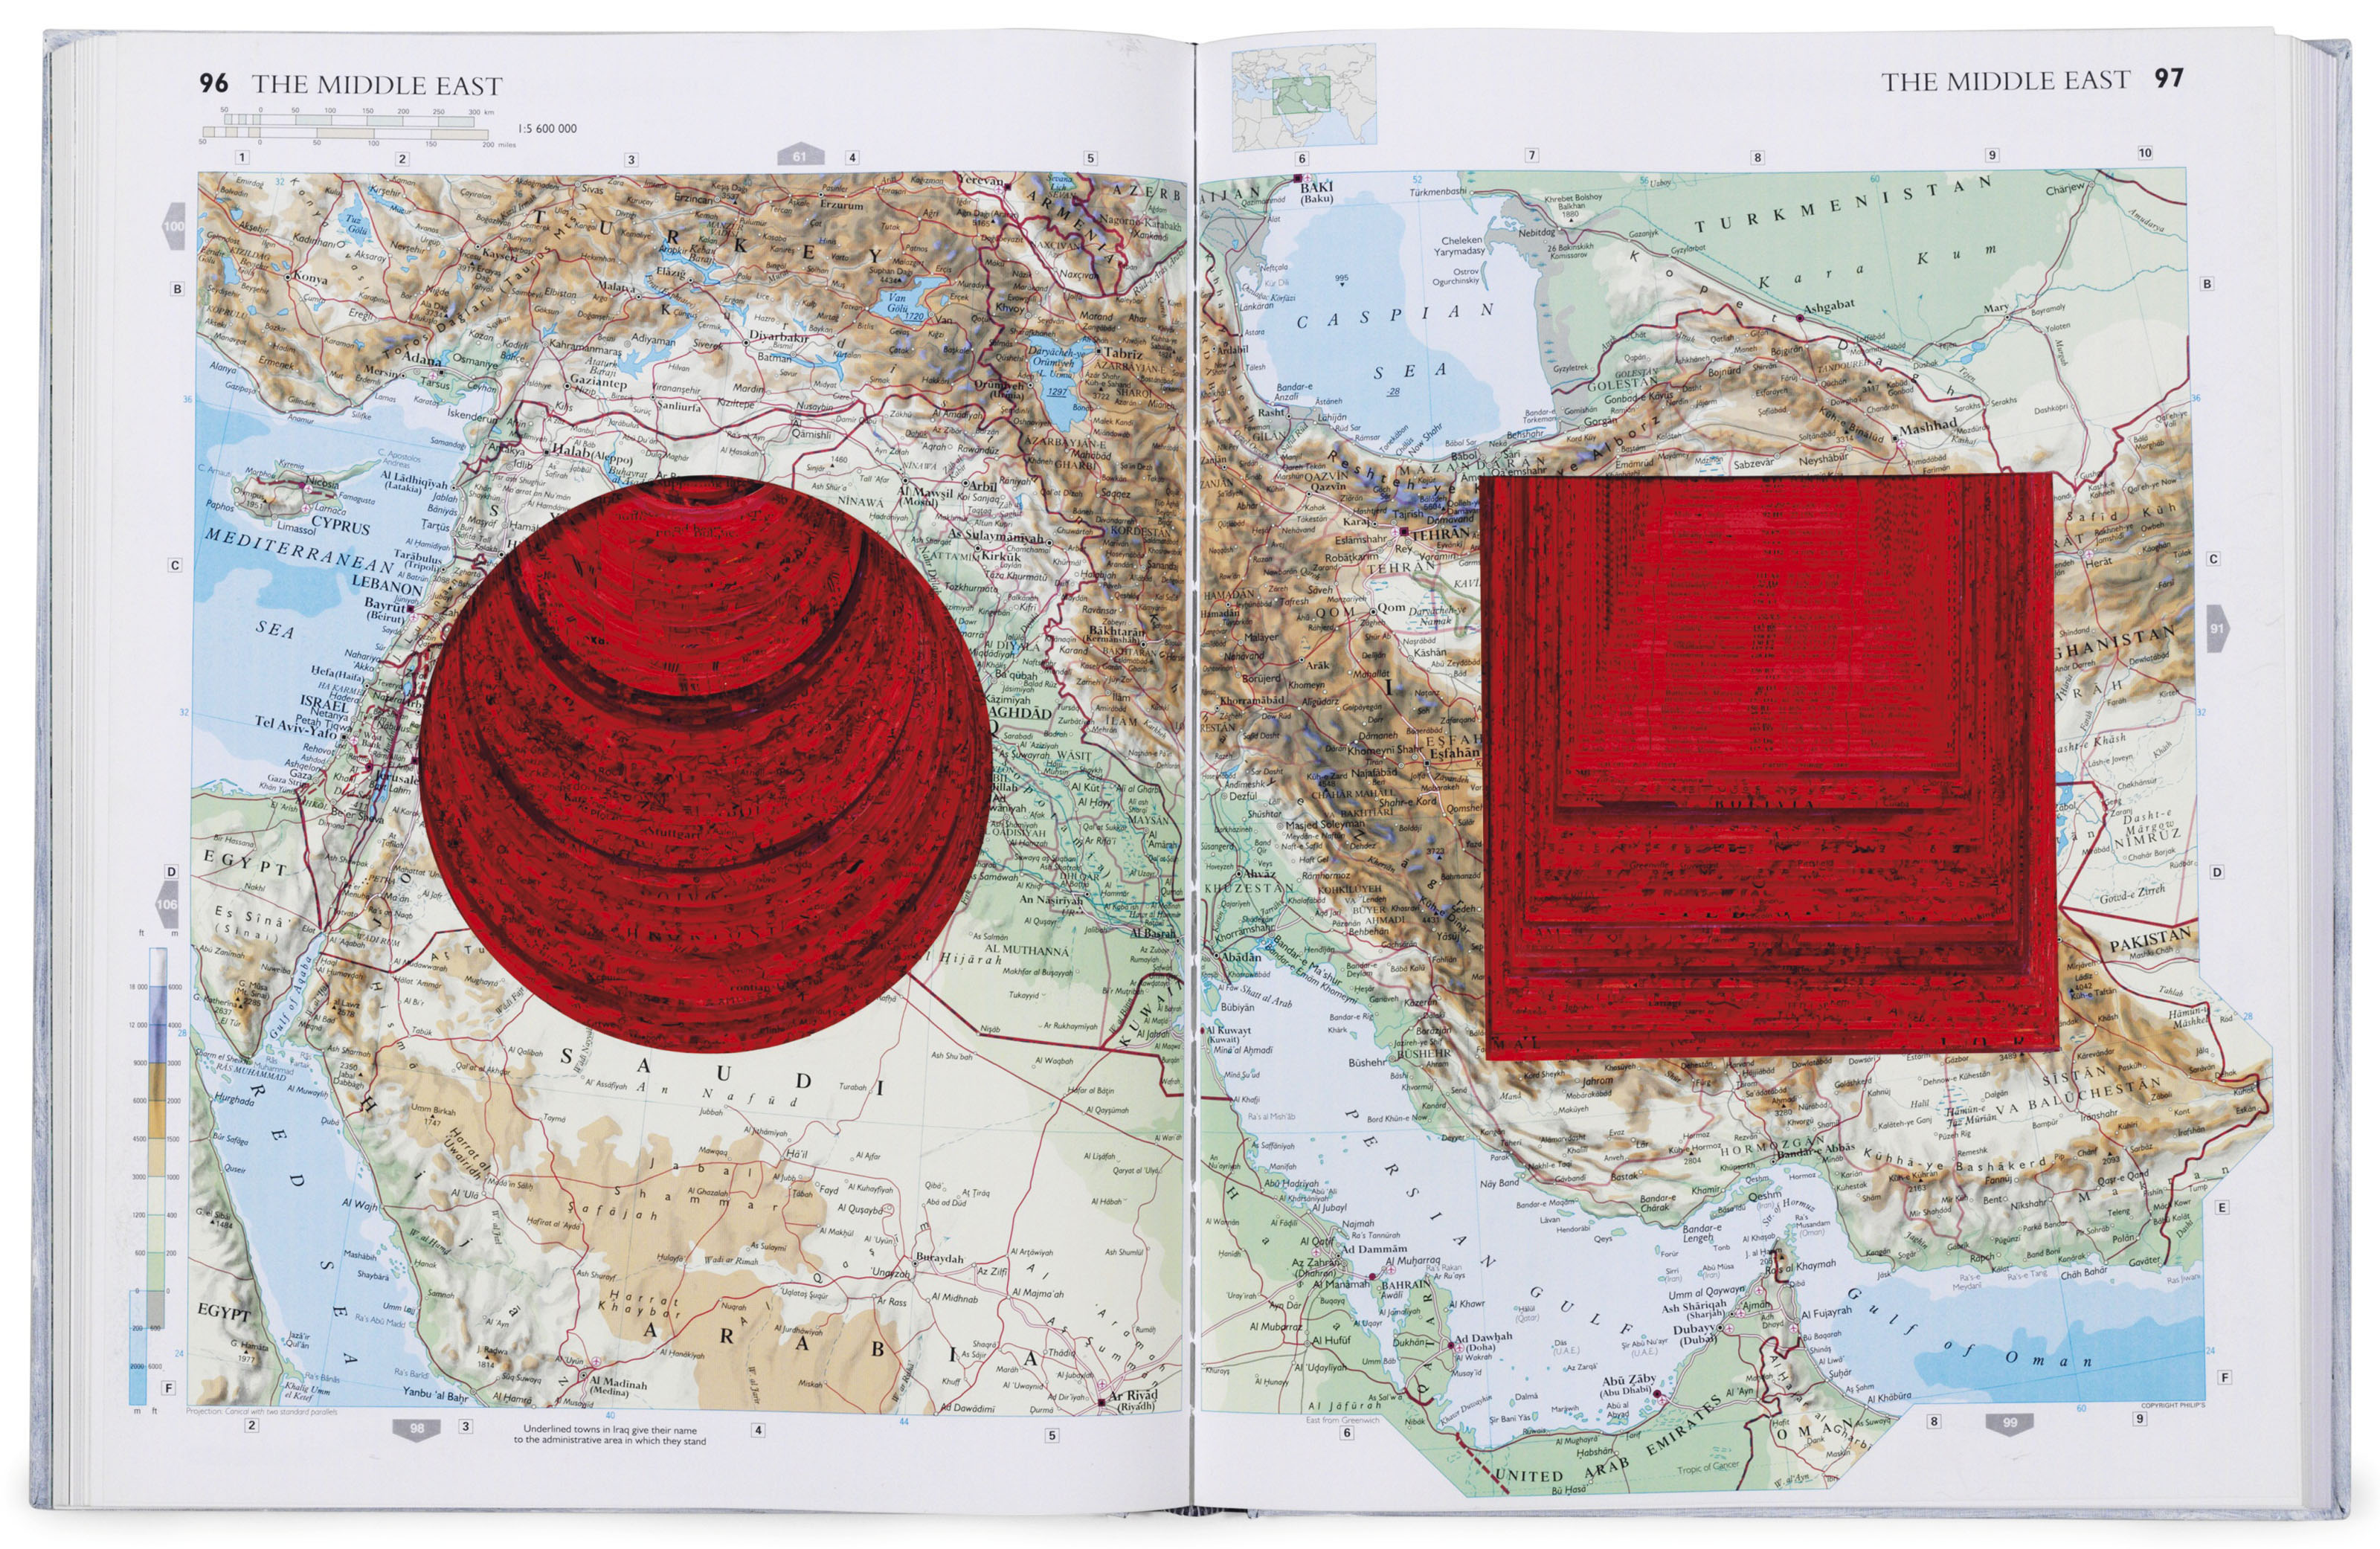 Anish Kapoor (b. 1954), Turning the World. Atlas 14¾ x 11¼ x 1⅝ in (375 x 286 x 41 mm). Estimate $4,000-6,000. Offered in Contemporary Edition, 9-17 July 2018, Online